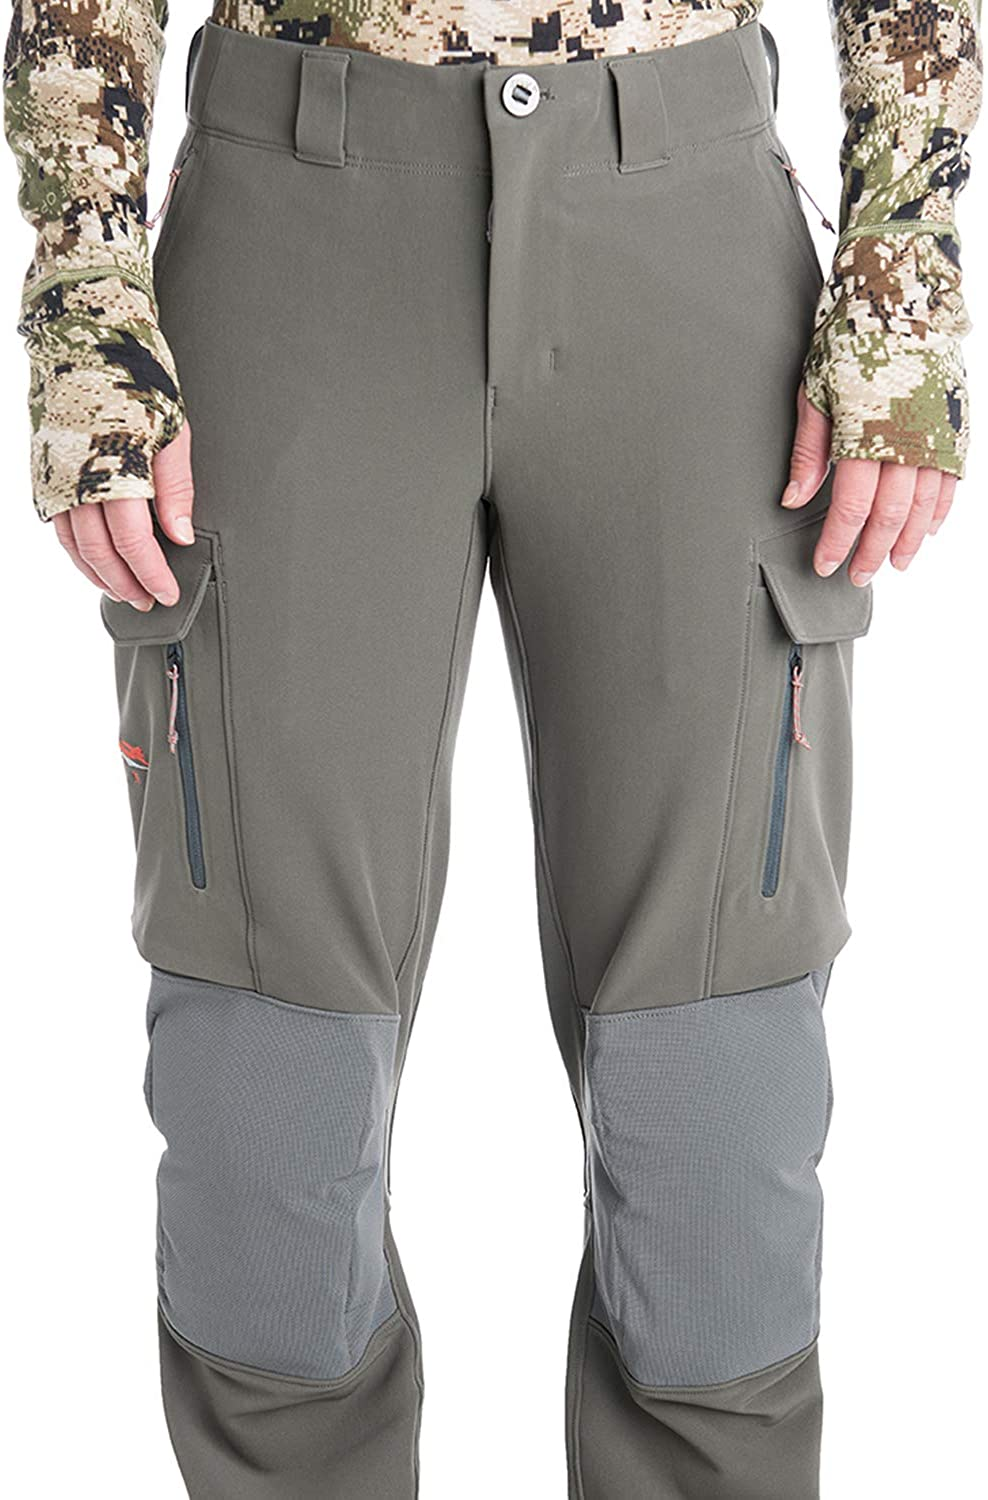 SITKA Gear Women's Timberline Pant, Lead, 33 Regular